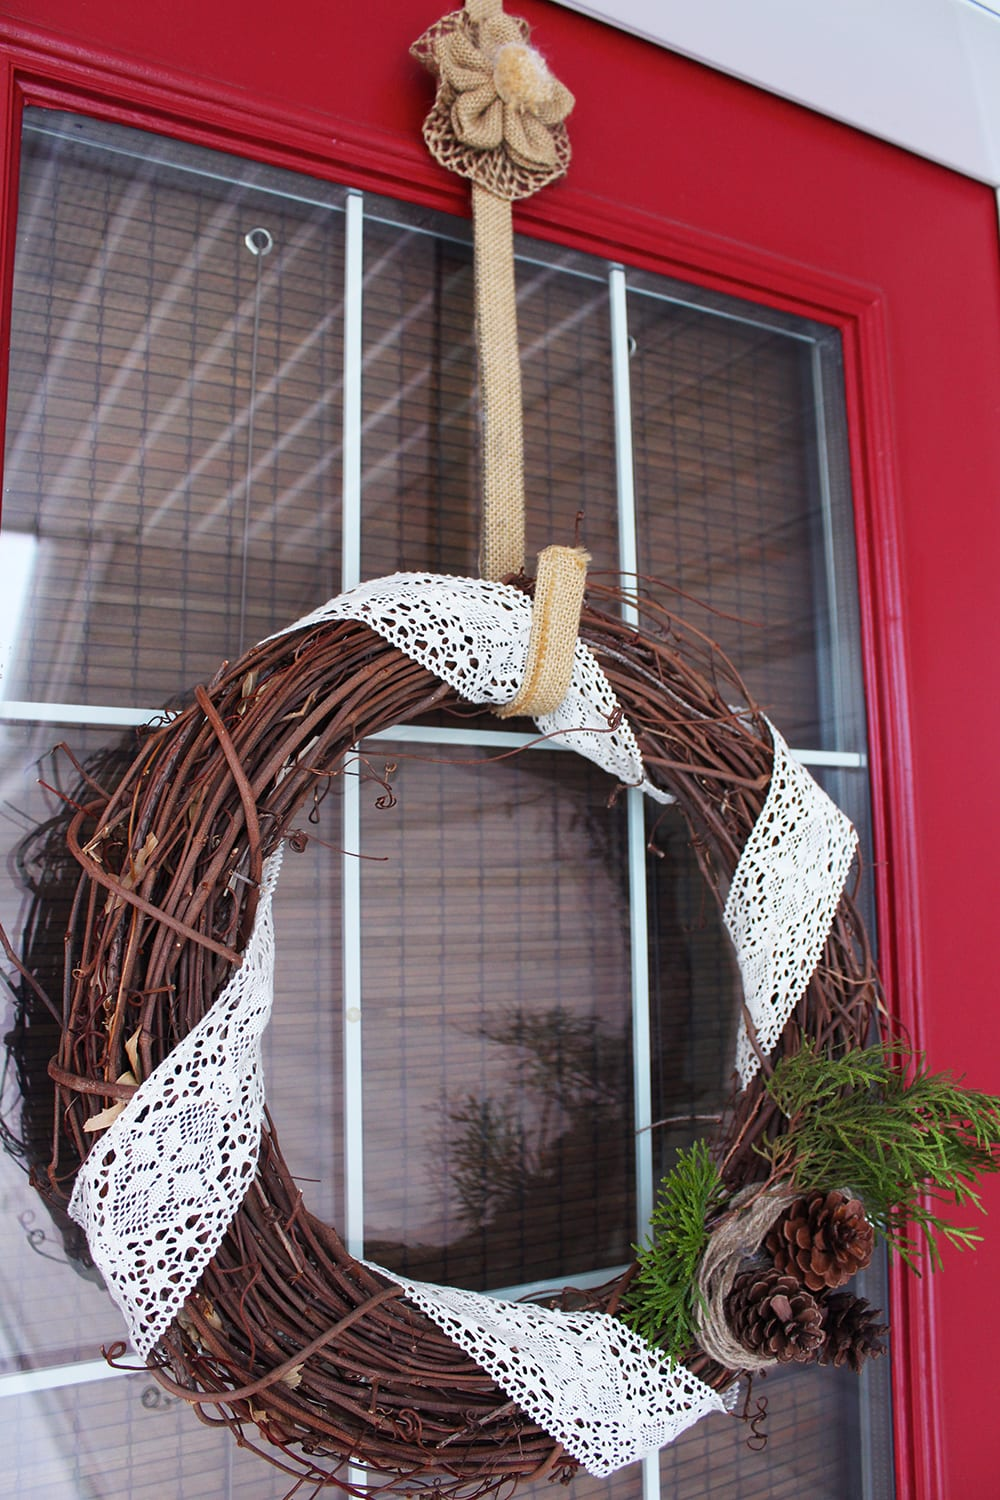 Nature inspired holiday decor featuring a grapevine wreath with lace, pine cones and fresh greenery - plus the bright red door adds an extra layer of Christmas-y cheer!